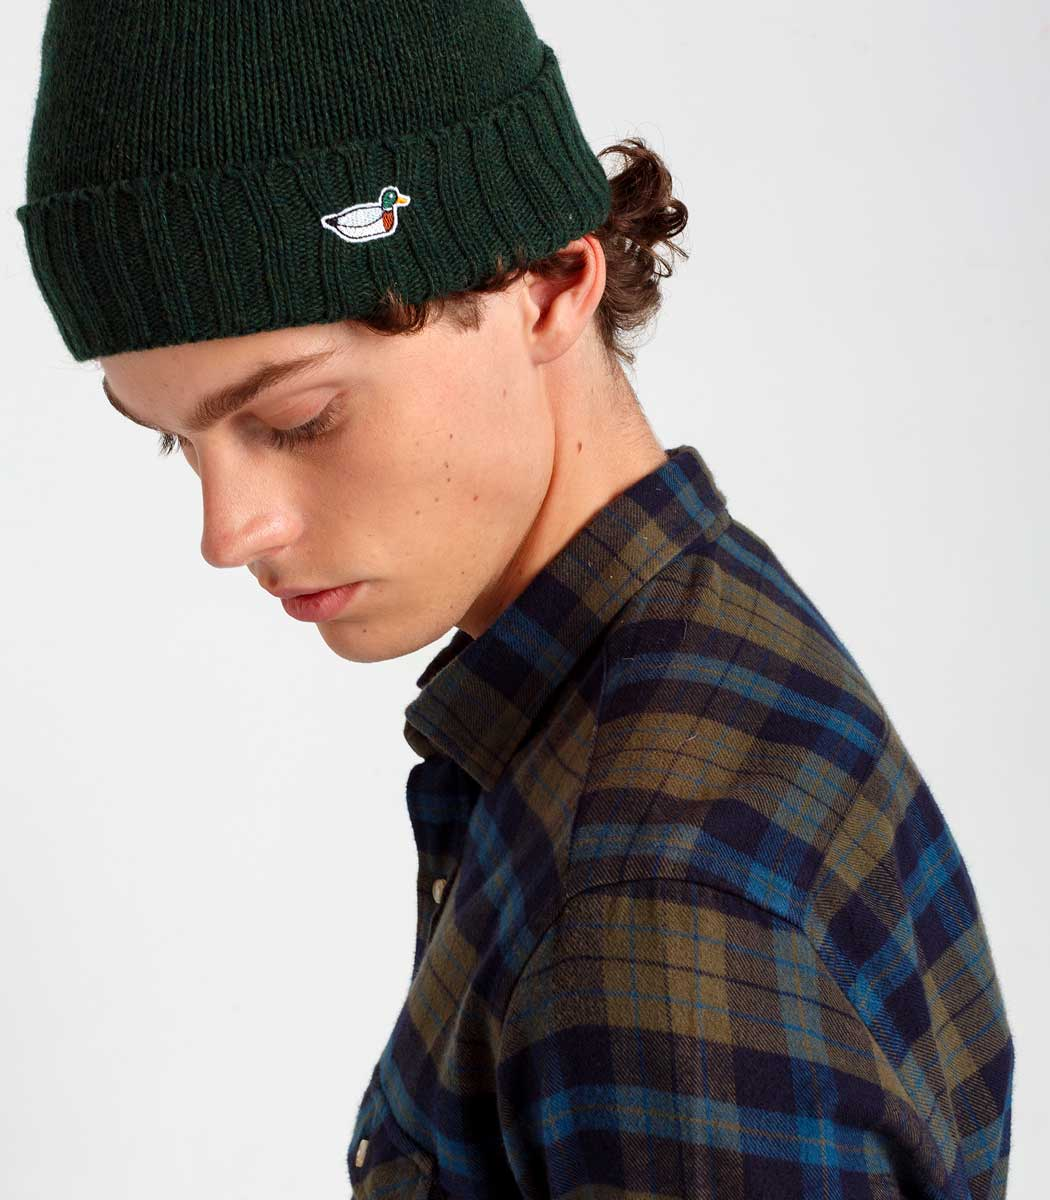 Edmmond Studios Checked Mountain Shirt in Khaki with the Duck Beanie in Green